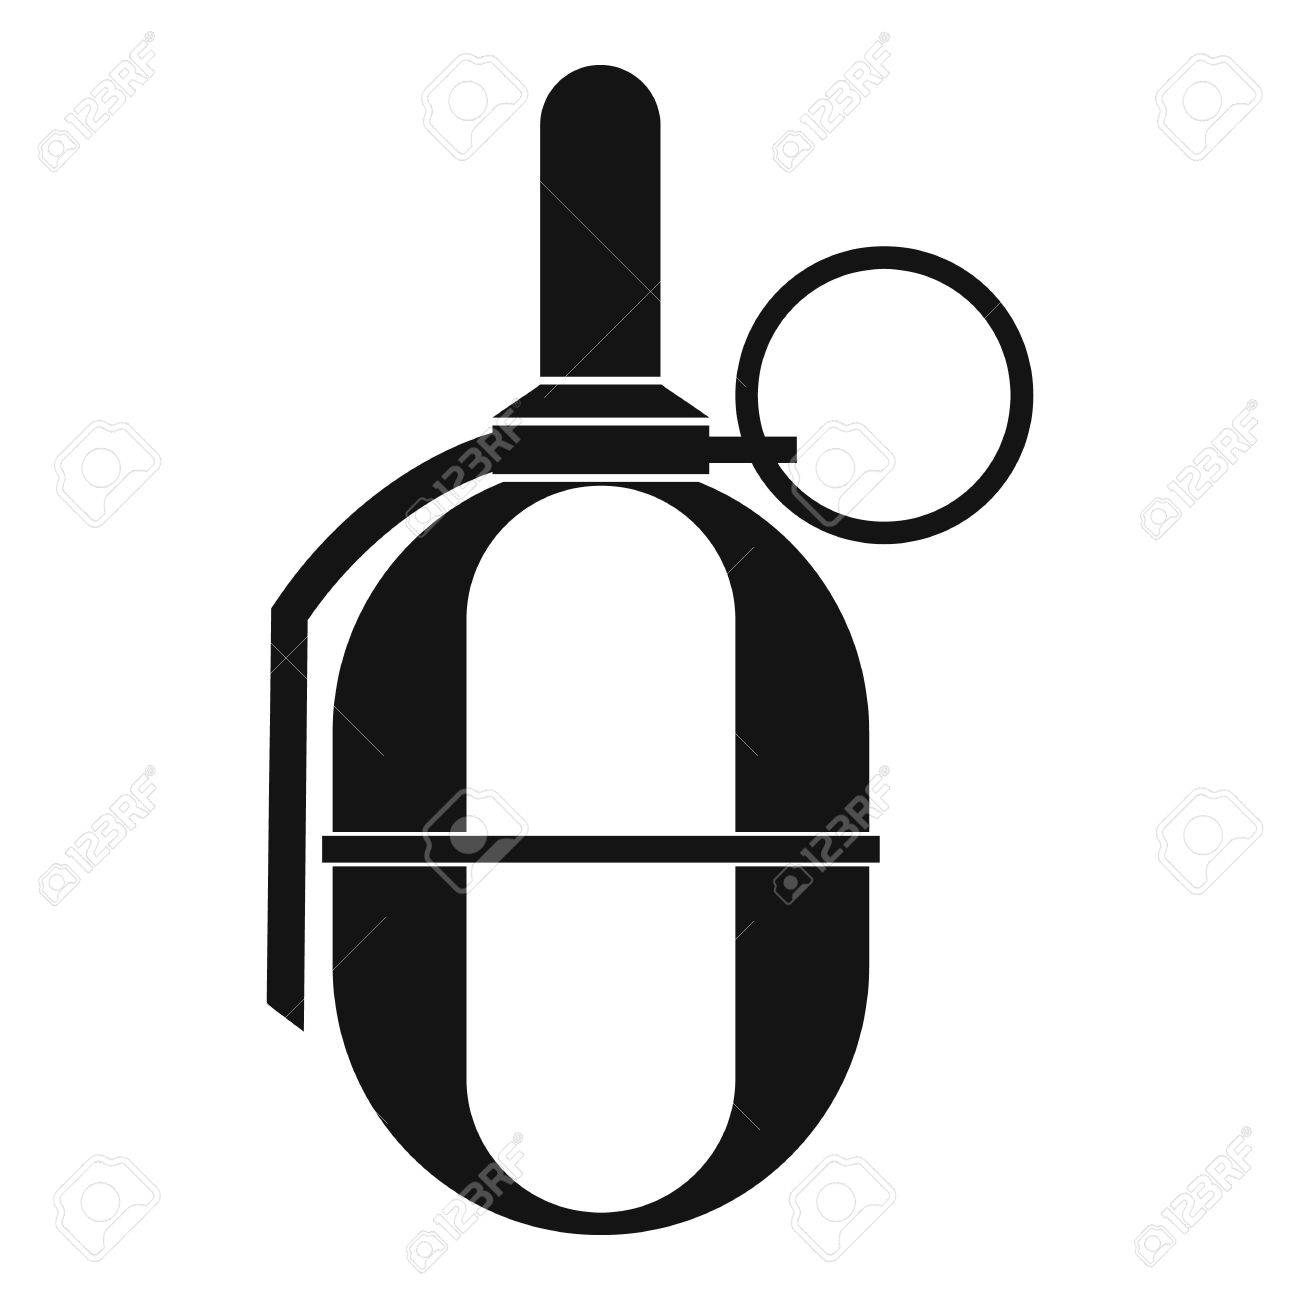 hand paintball grenade icon in simple style on a white background rh 123rf com grenade vector images